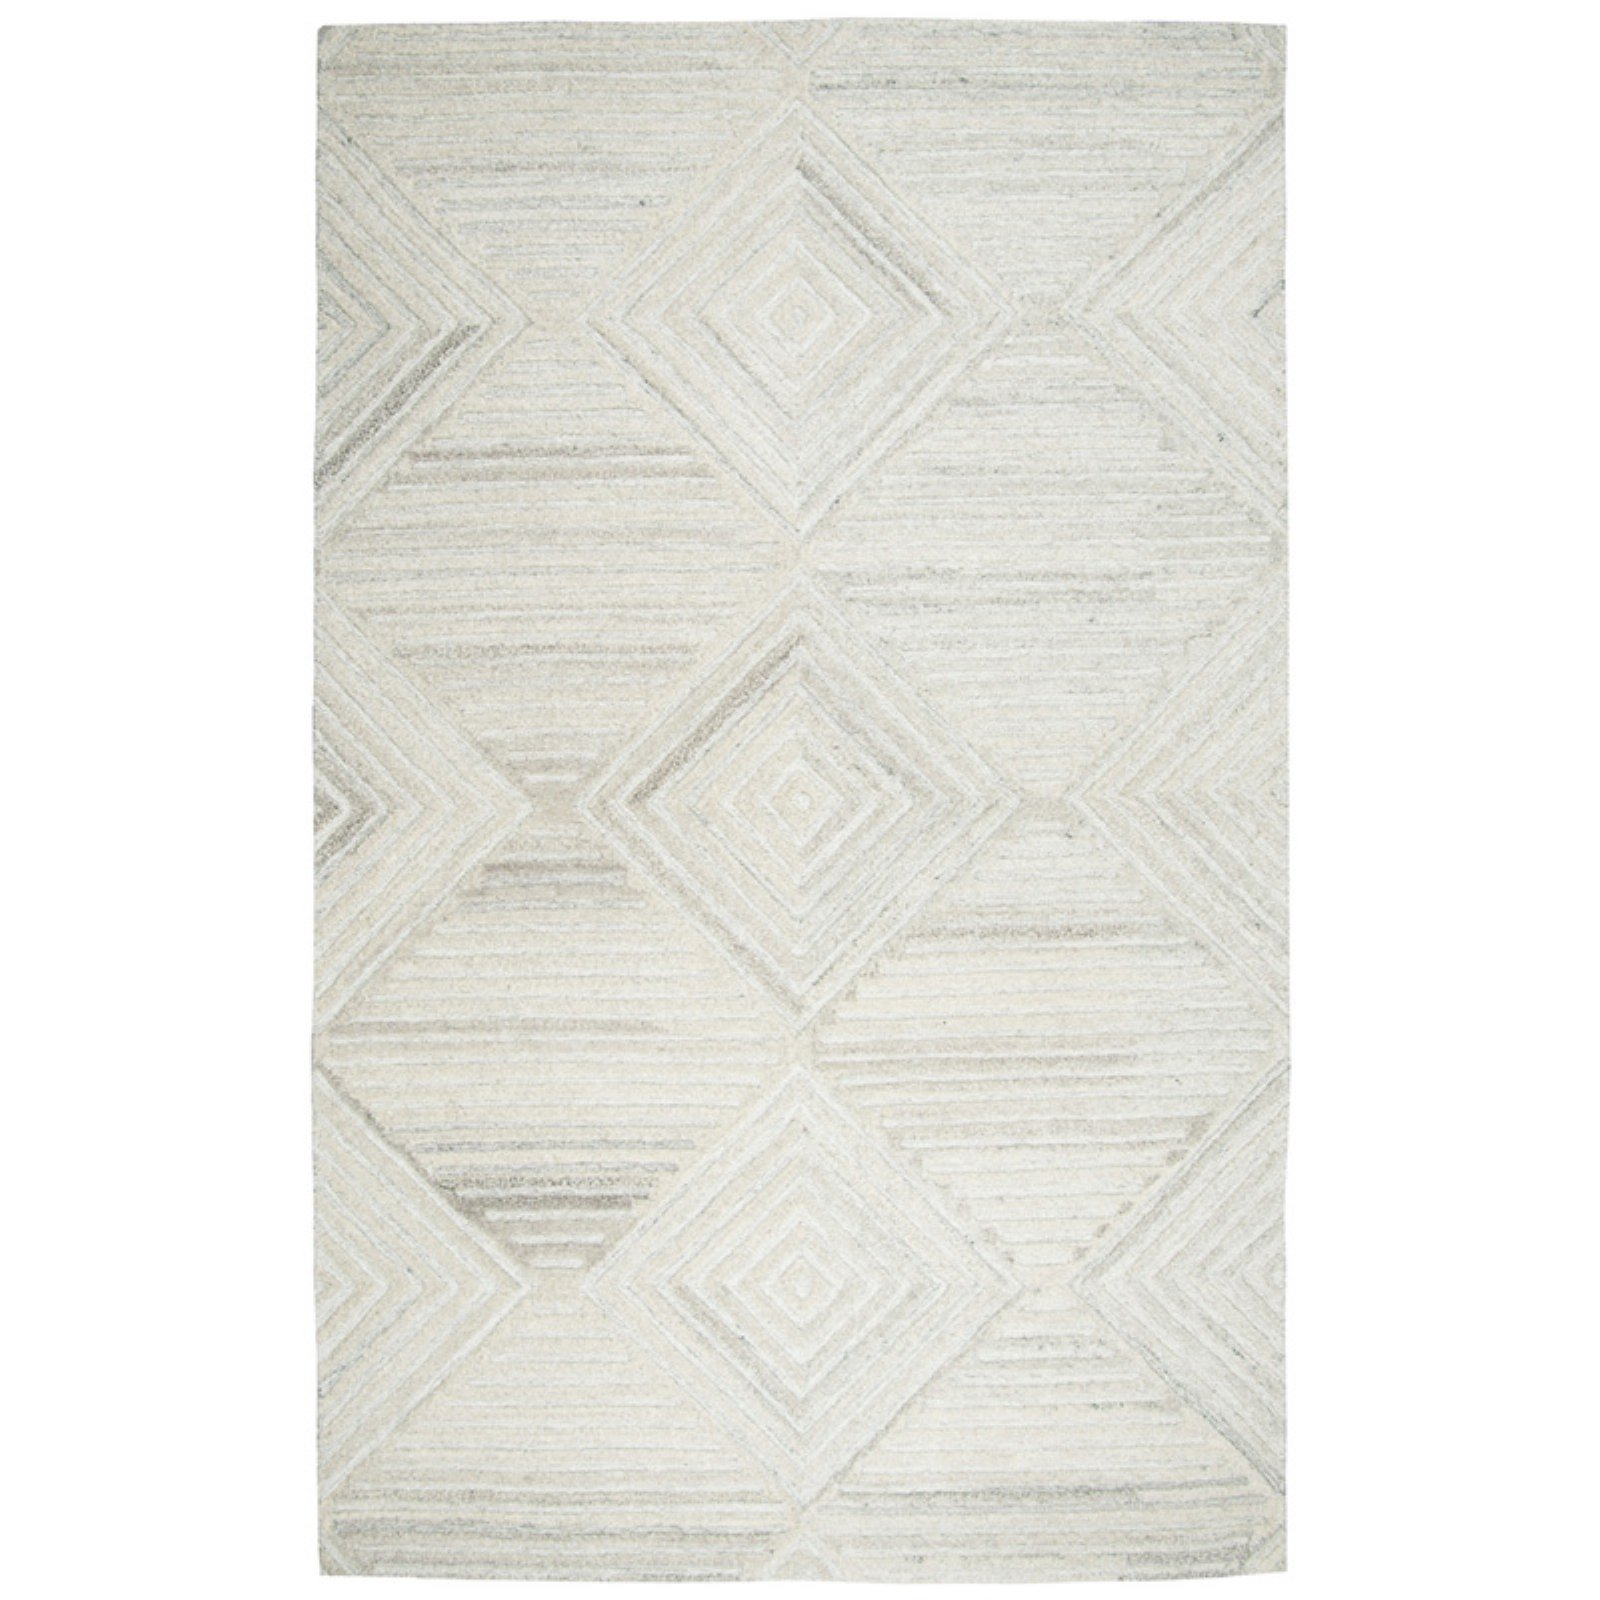 RIZZY HOME SUFFOLK COLLECTIONS SK333A 9' x 12' AREA RUGS